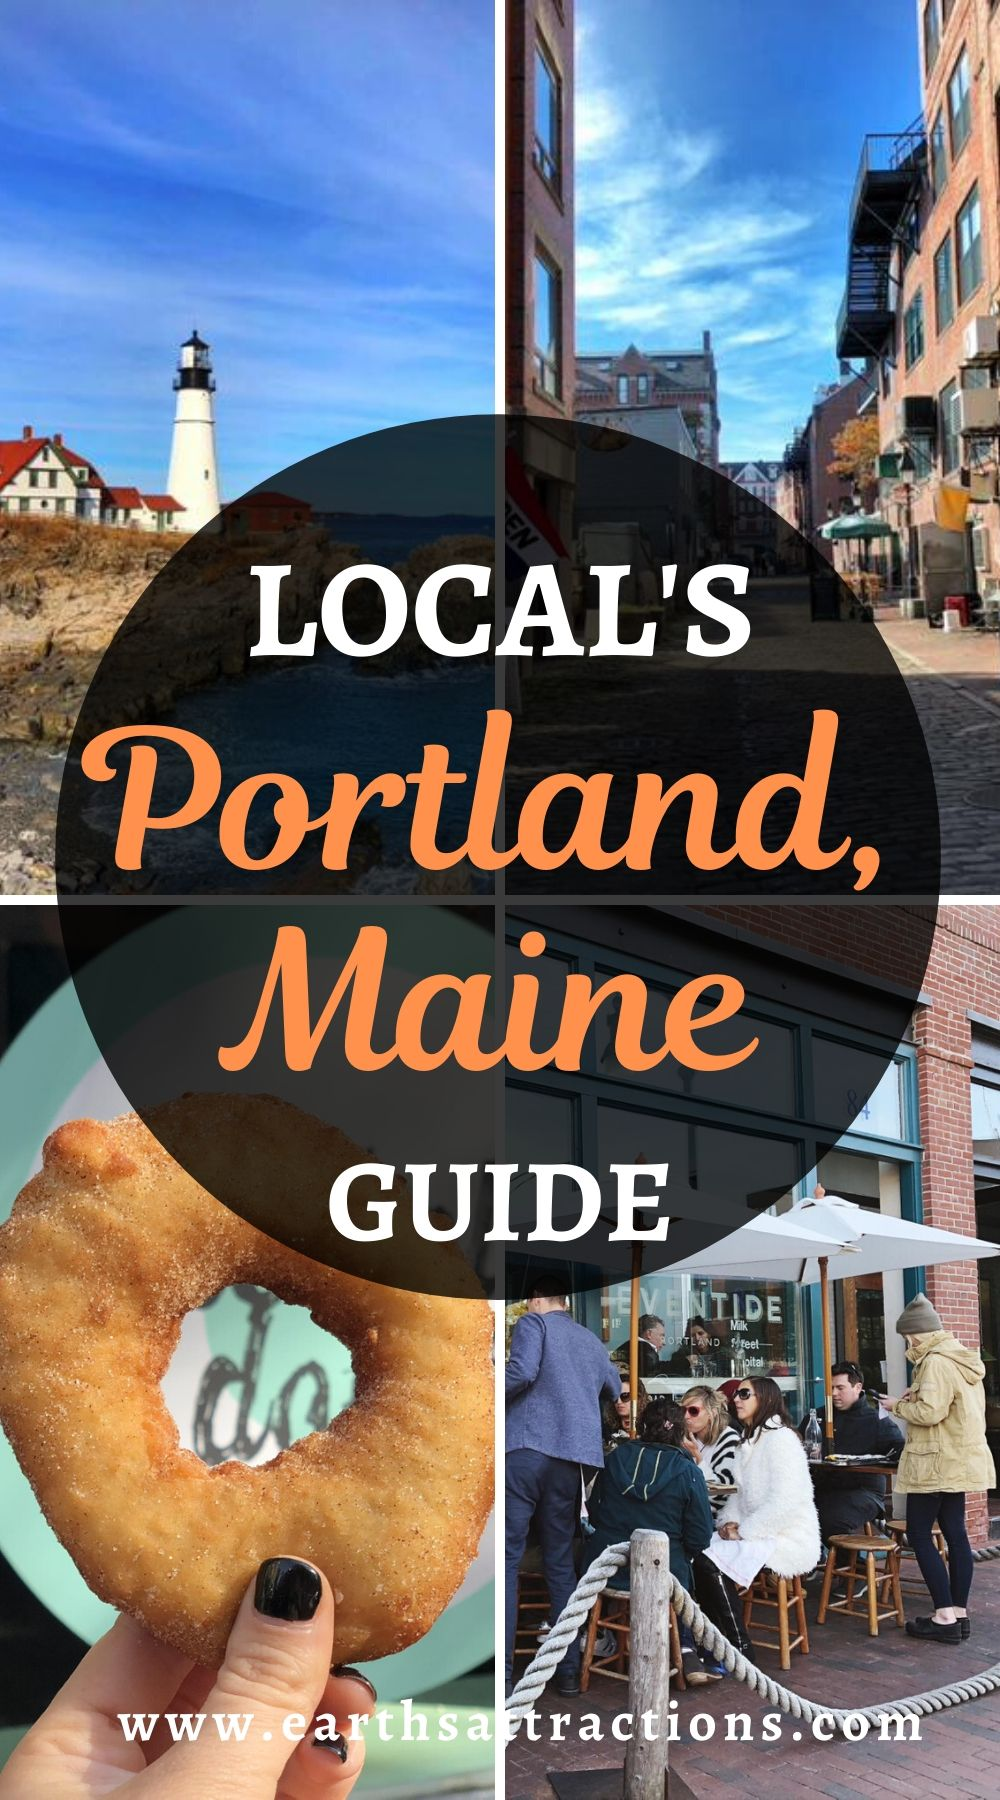 Discover the best things to do in Portland, Maine, USA from this local's guide to Portland Maine. Find out what to do in Portland, great Portland restaurants to try, and useful tips for Portland from this incredibly useful Portland guide. The best Portland attractions are, of course, included! Read the article now! #portland #usa #traveltips #usatravel #maine #portlandmaine #earthsattractions #travelguides